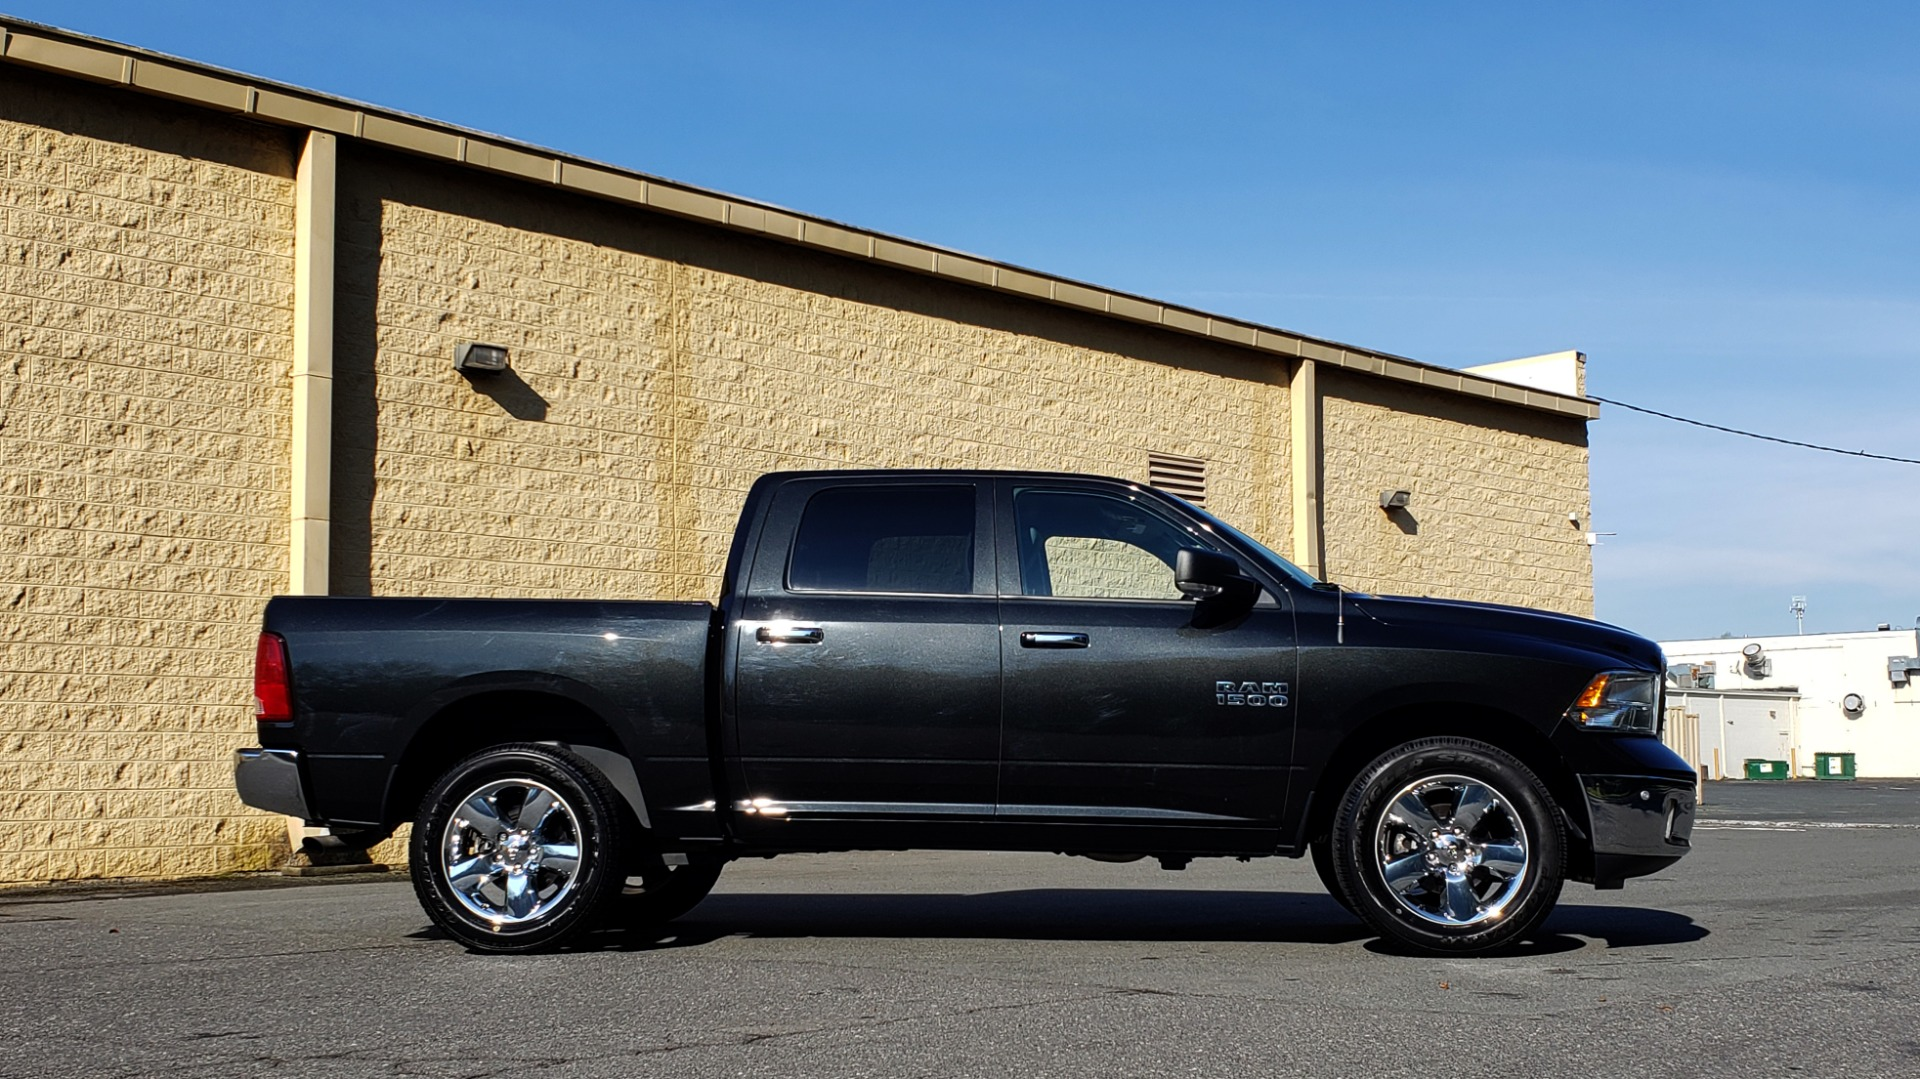 Used 2017 Ram 1500 BIG HORN CREW CAB 4X4 / 3.6L V6 / 8-SPD AUTO / WIFI HOTSPOT for sale Sold at Formula Imports in Charlotte NC 28227 5